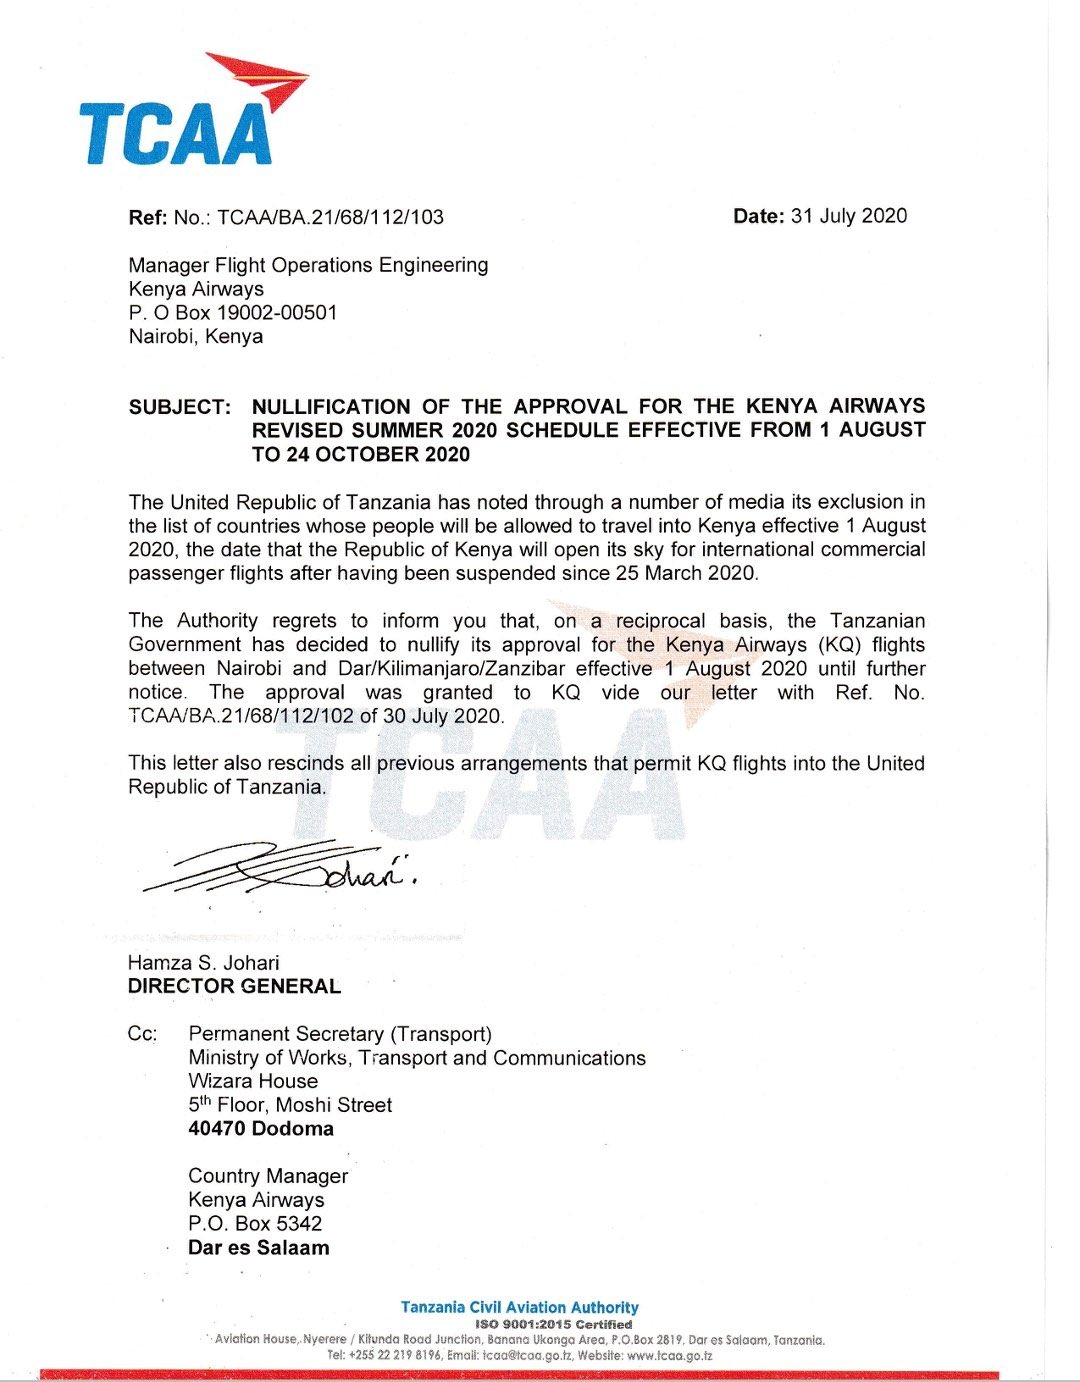 TCAA notice banning Kenya Airways from accessing the Tanzanian airspace